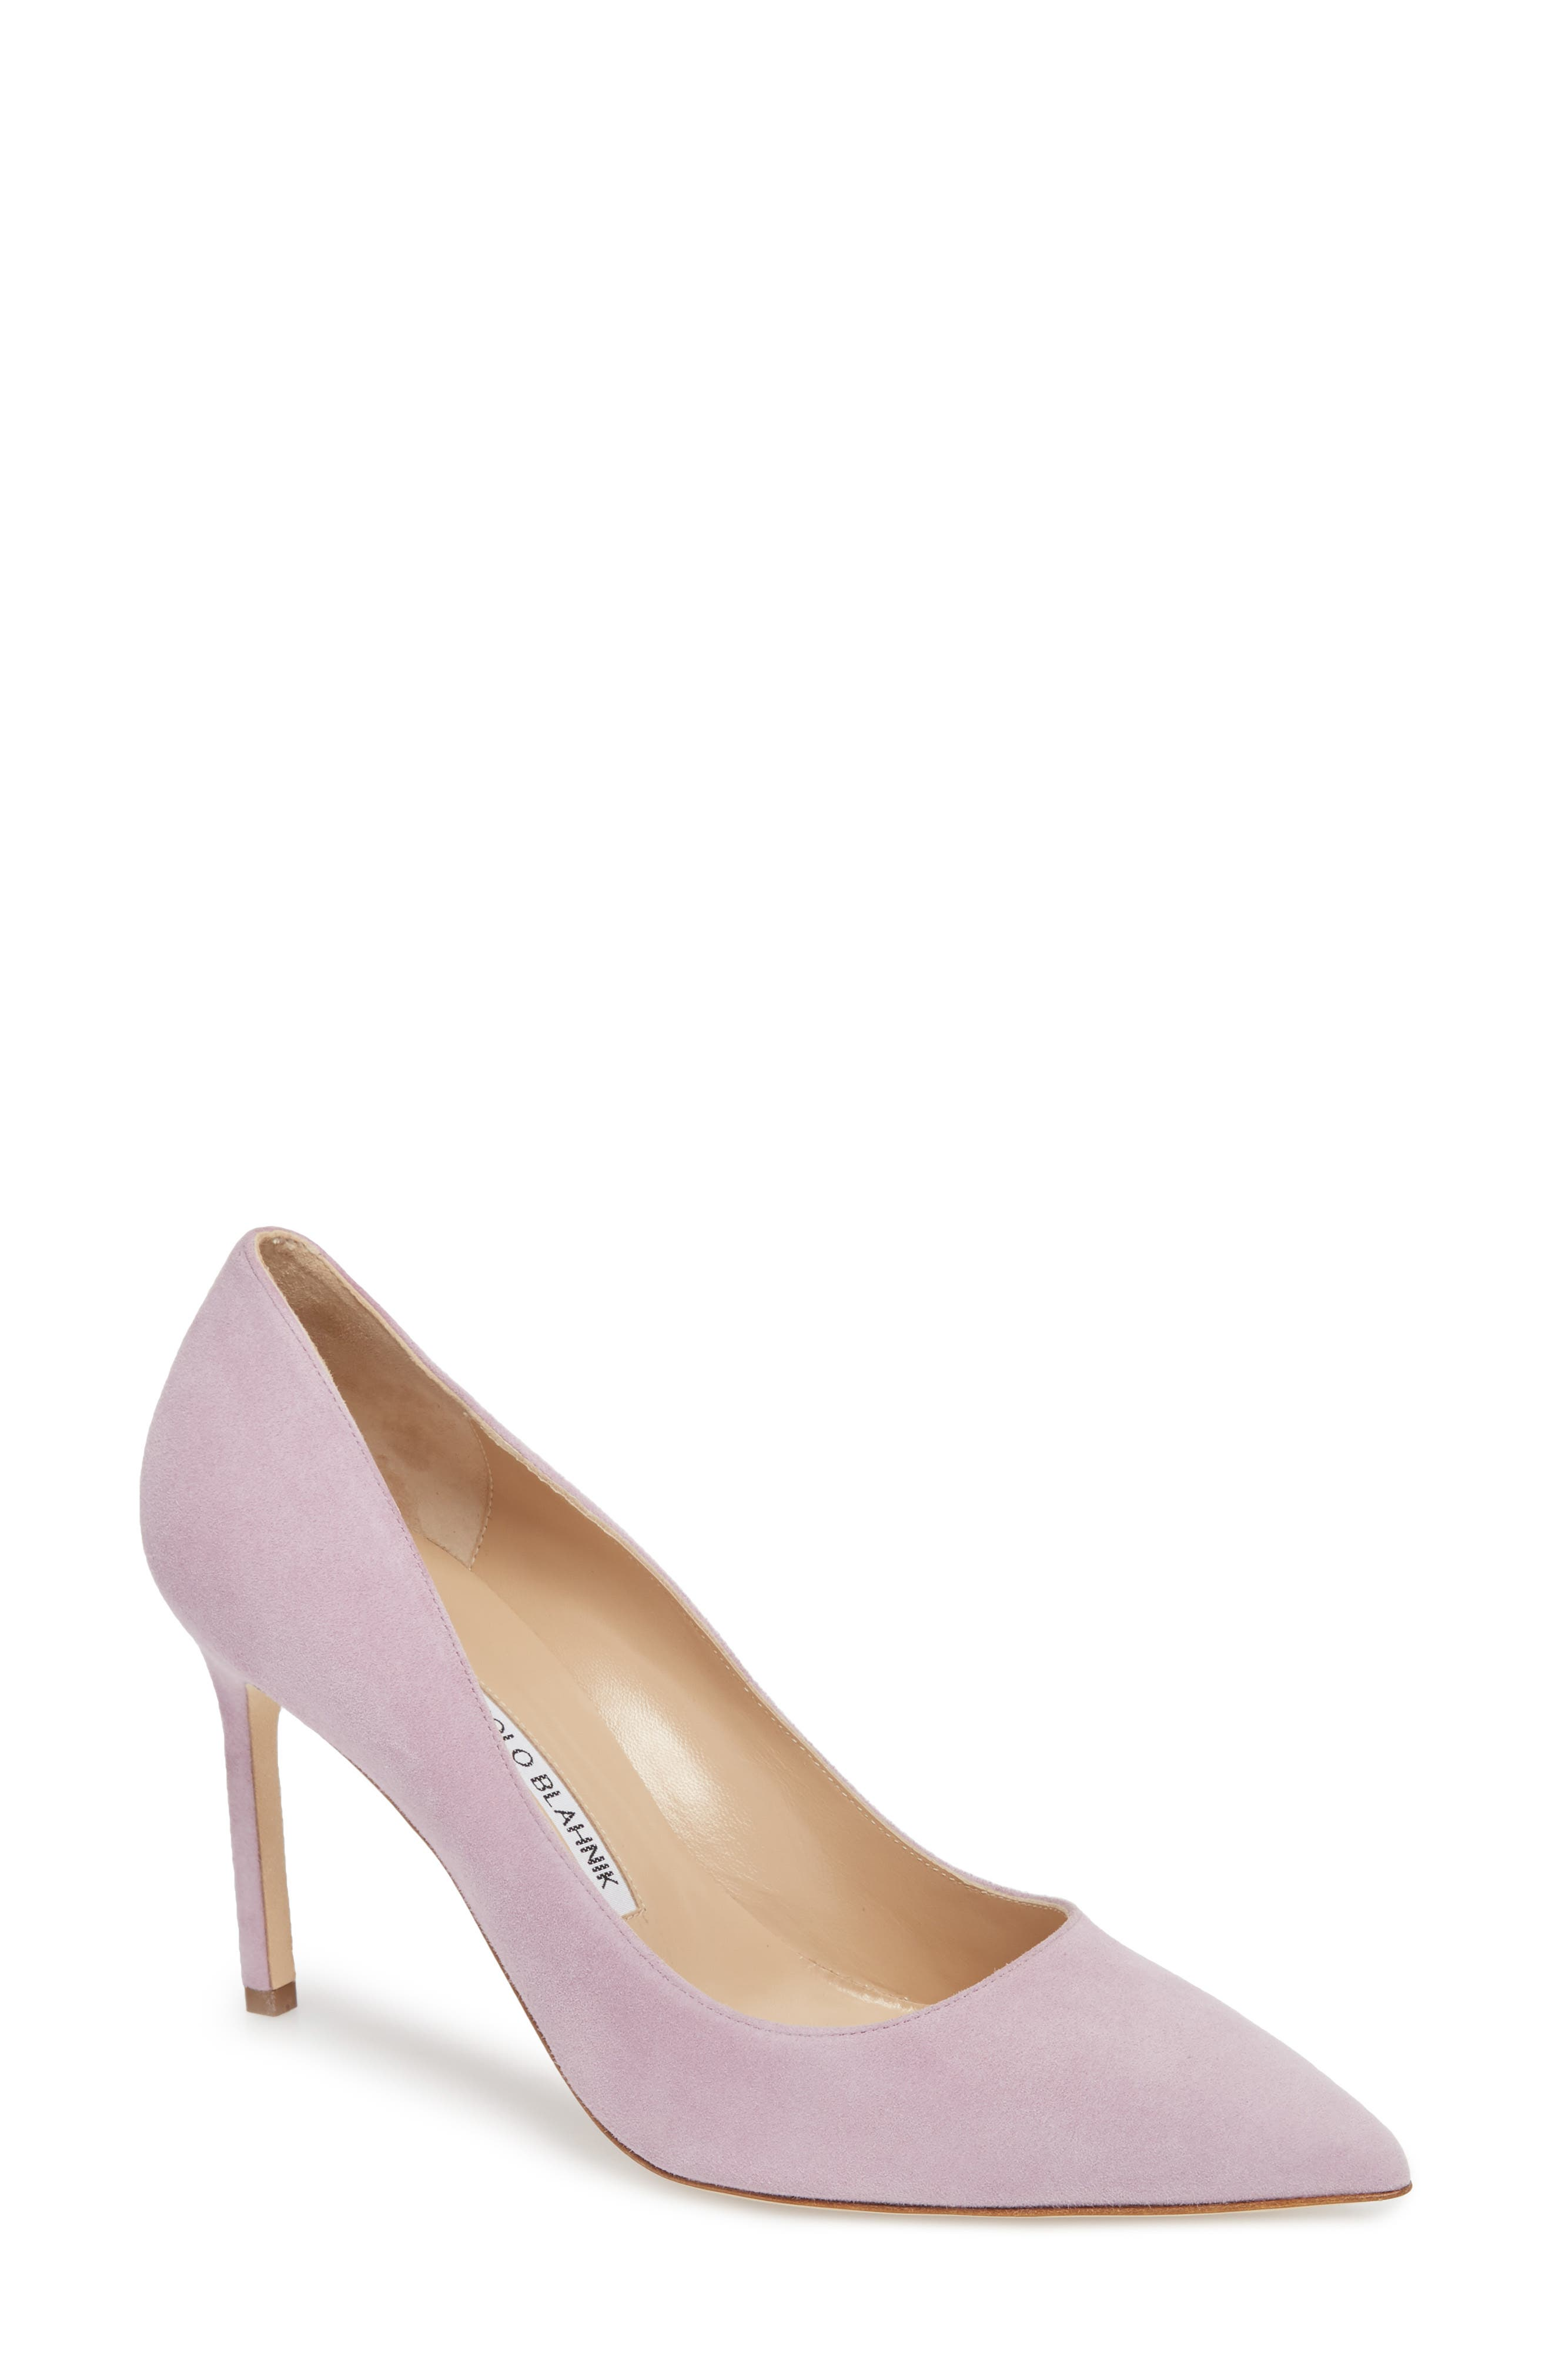 BB Pointy Toe Pump,                             Main thumbnail 1, color,                             Lavender Suede